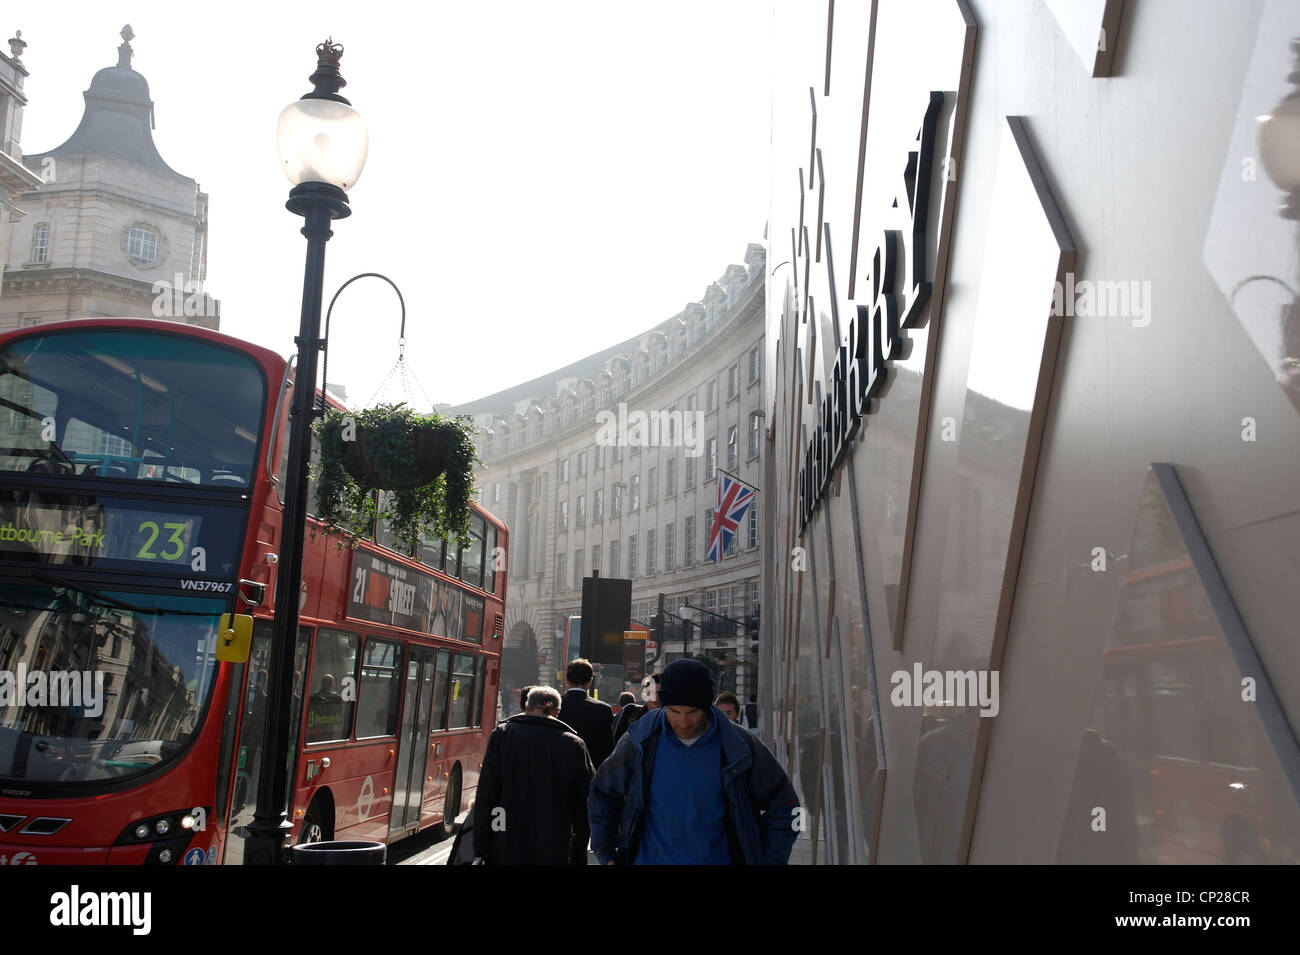 Burberry new shop Sign Regent Street shopping area in London - Stock Image